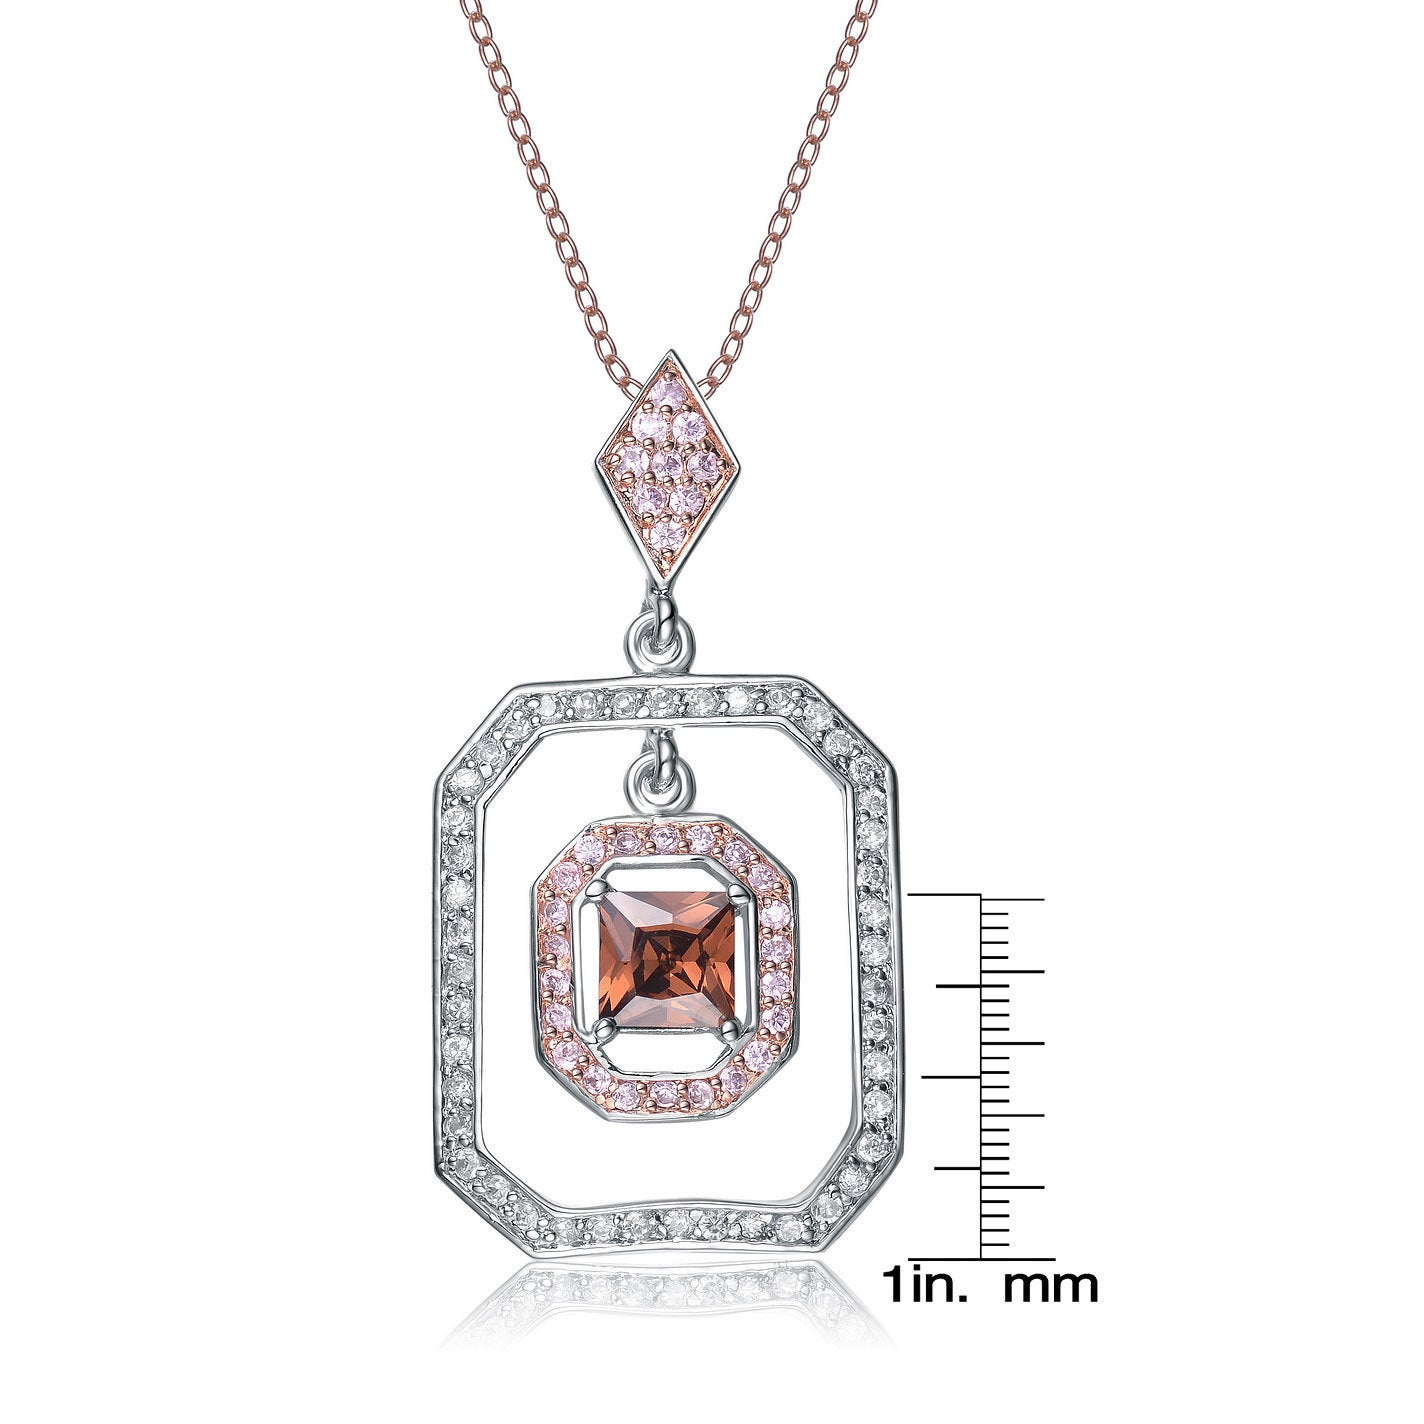 Bright Sterling Silver Red Aaa Zircon Pendant Necklace Bridal & Wedding Party Jewelry Jewelry & Watches Great Varieties